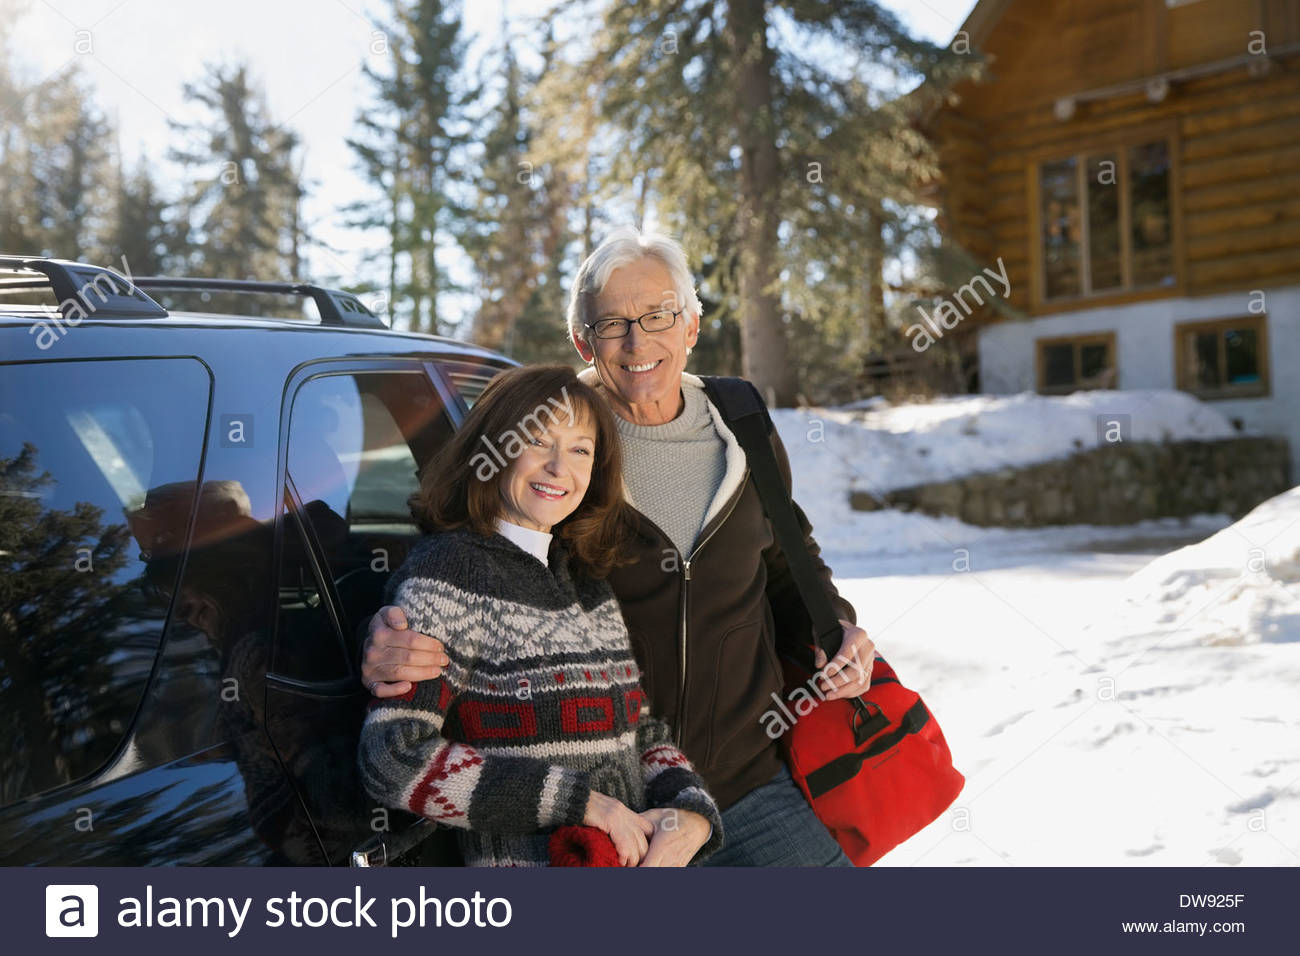 Portrait of senior couple standing by vehicle - Stock Image